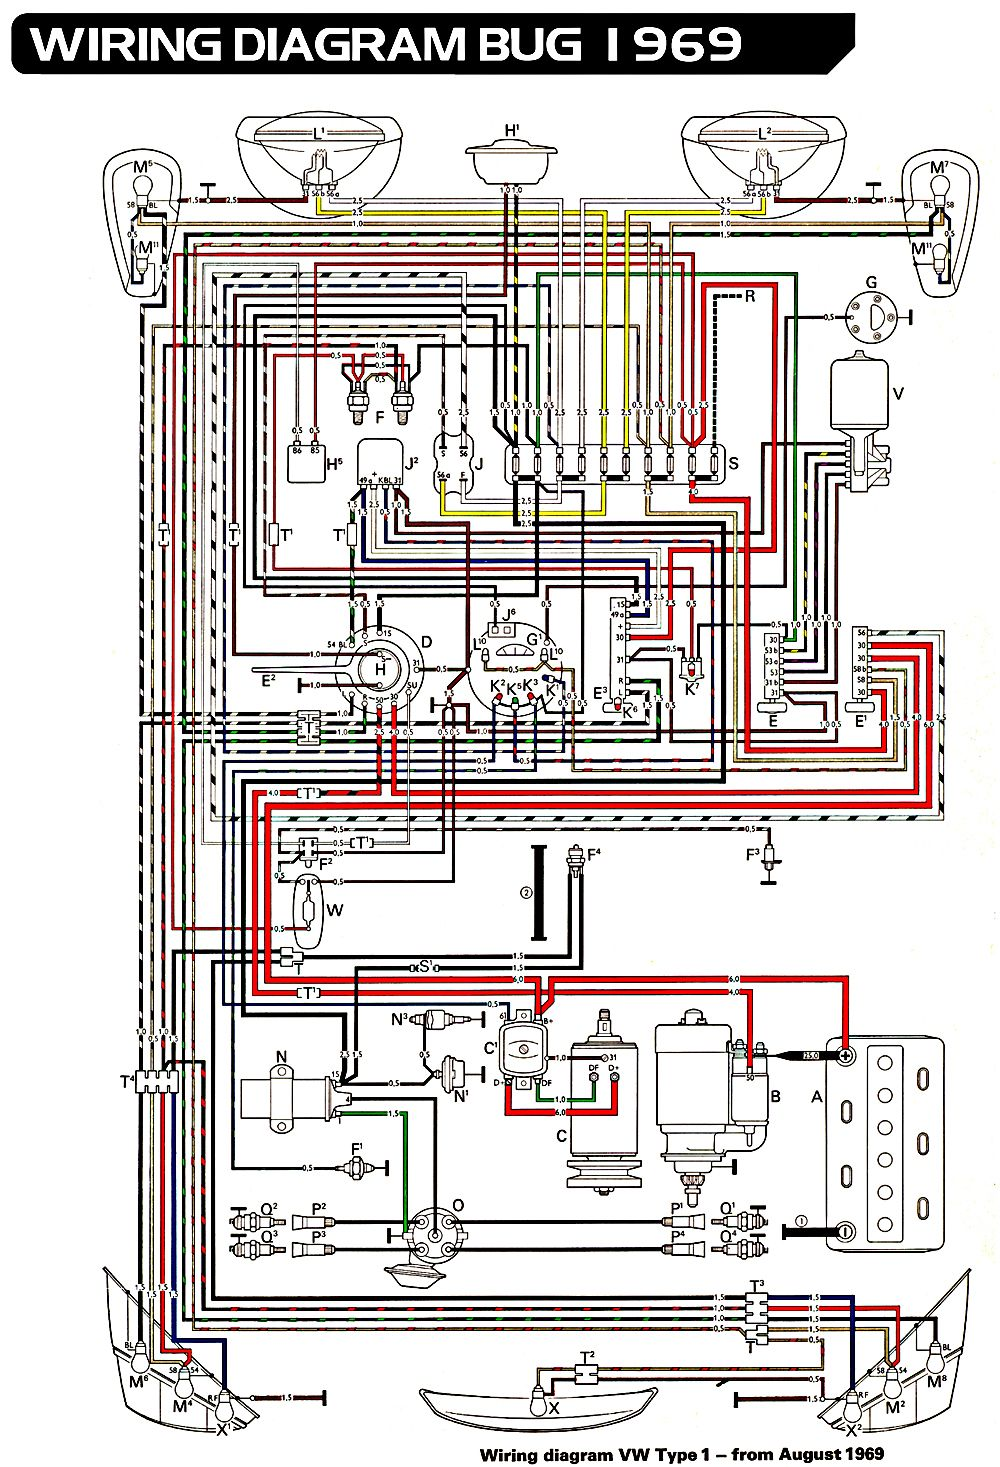 6d75c15875479254f26a32a8499d9044 volkswagen beetle wiring diagram 1966 vw beetle wiring 1973 Super Beetle Wiring Diagram at reclaimingppi.co